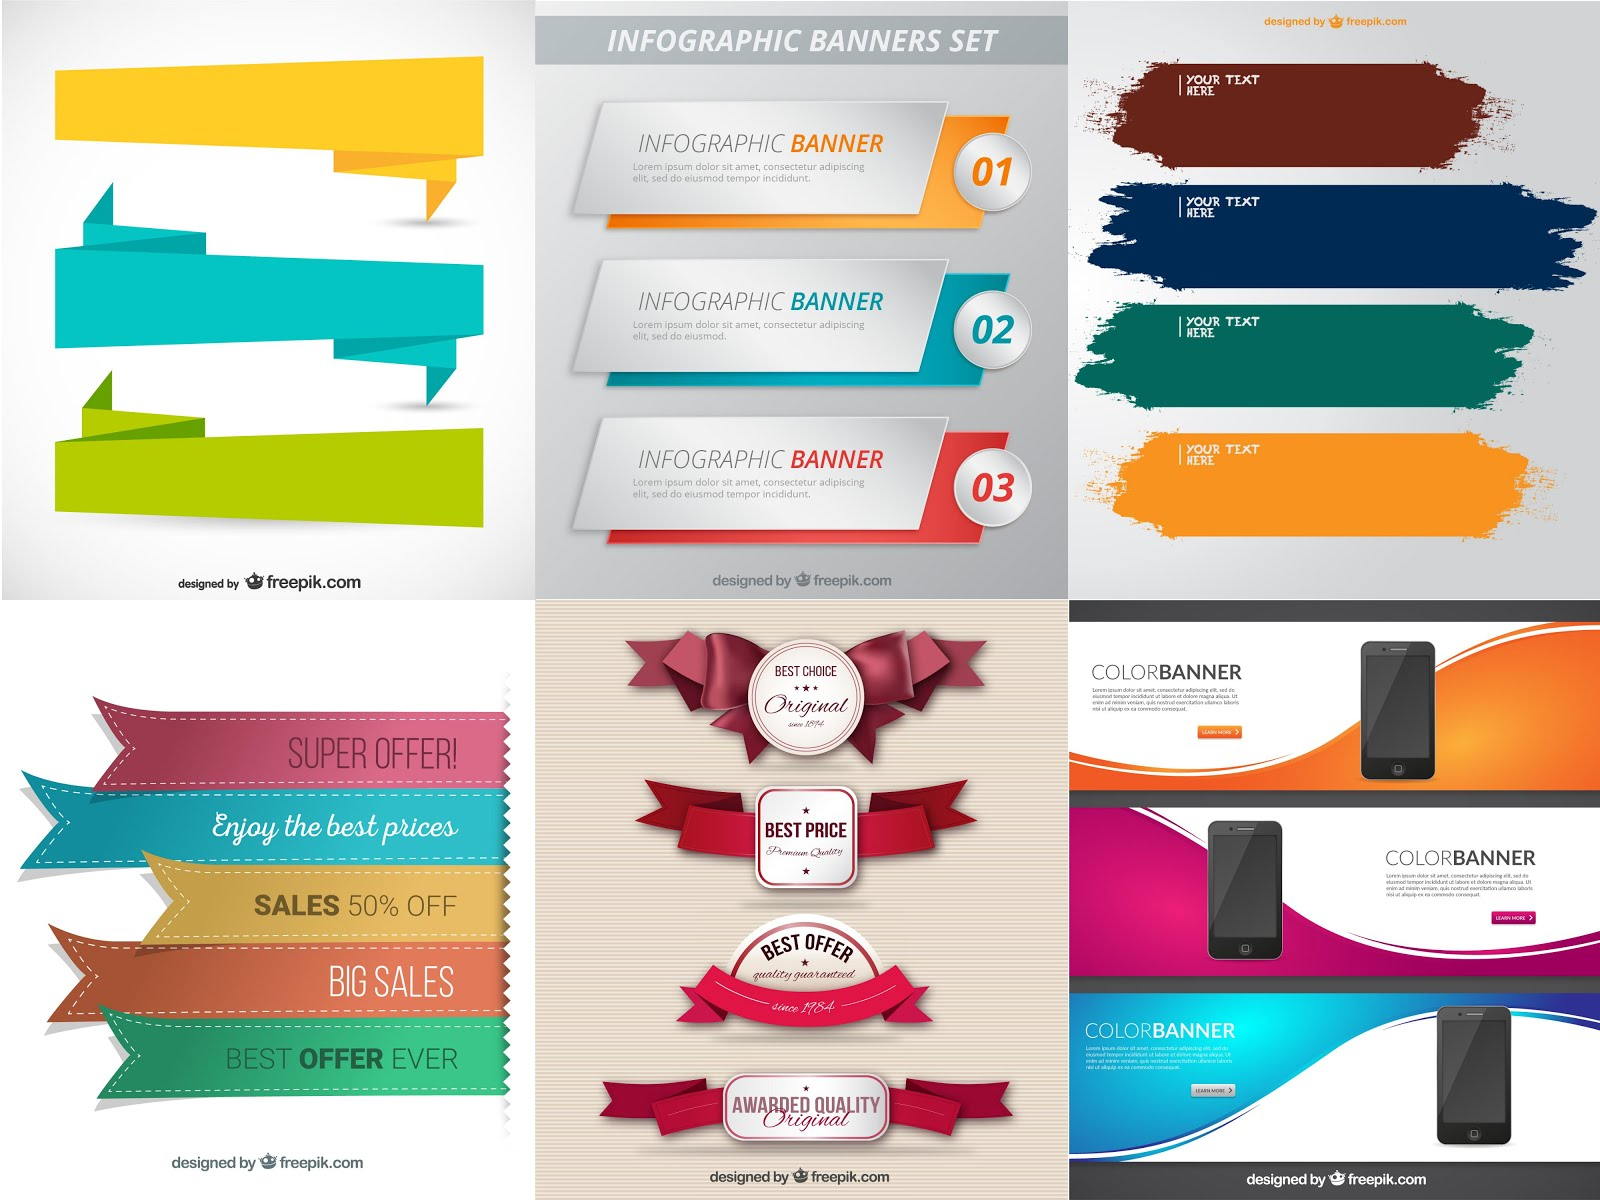 Free vector infographic banners | Free vectors